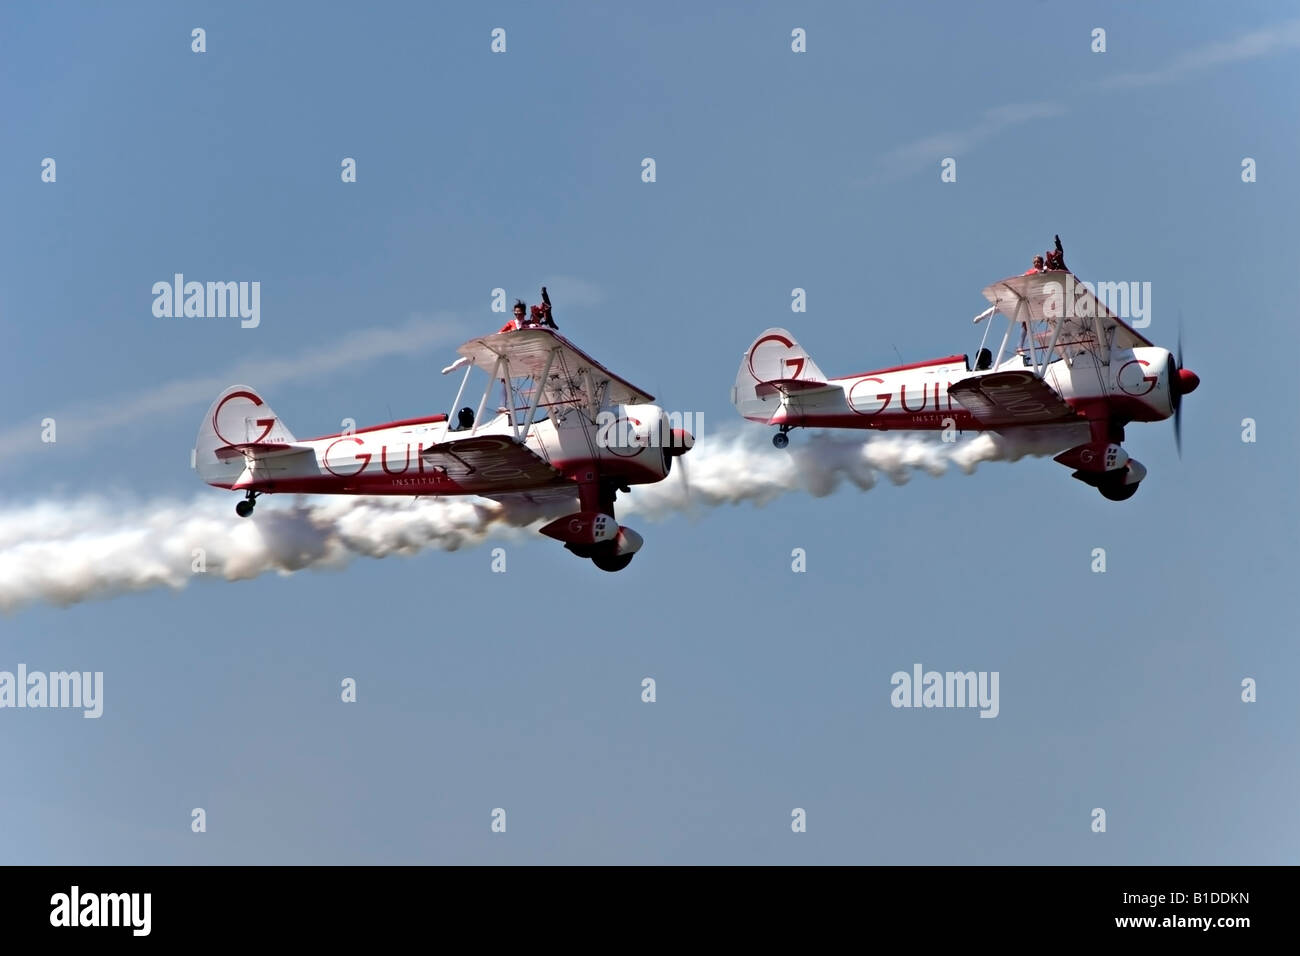 Two Boeing Stearman biplanes from Team Guinot perform their wingwalking feats at the Biggin Hill Airshow - Stock Image